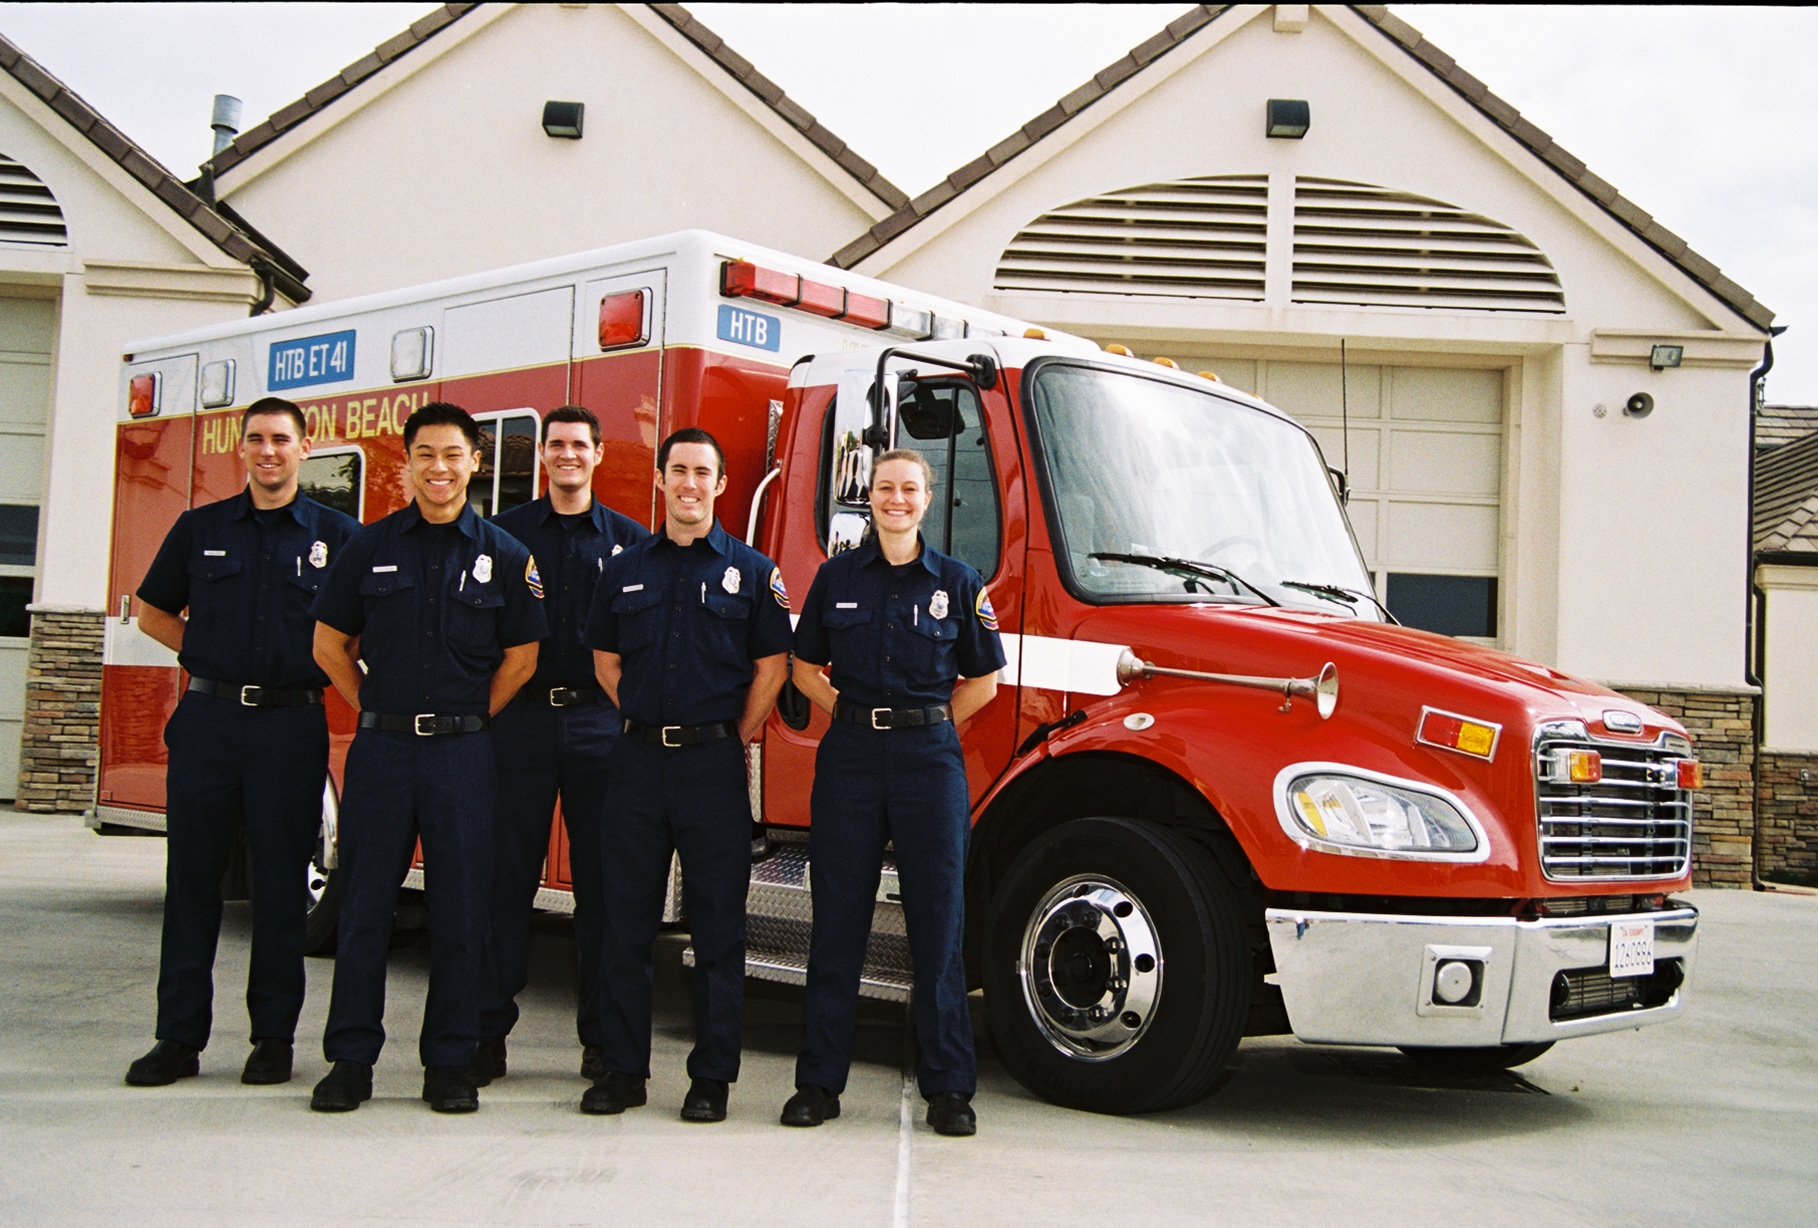 City of Huntington Beach, CA - Fire - Ambulance Program